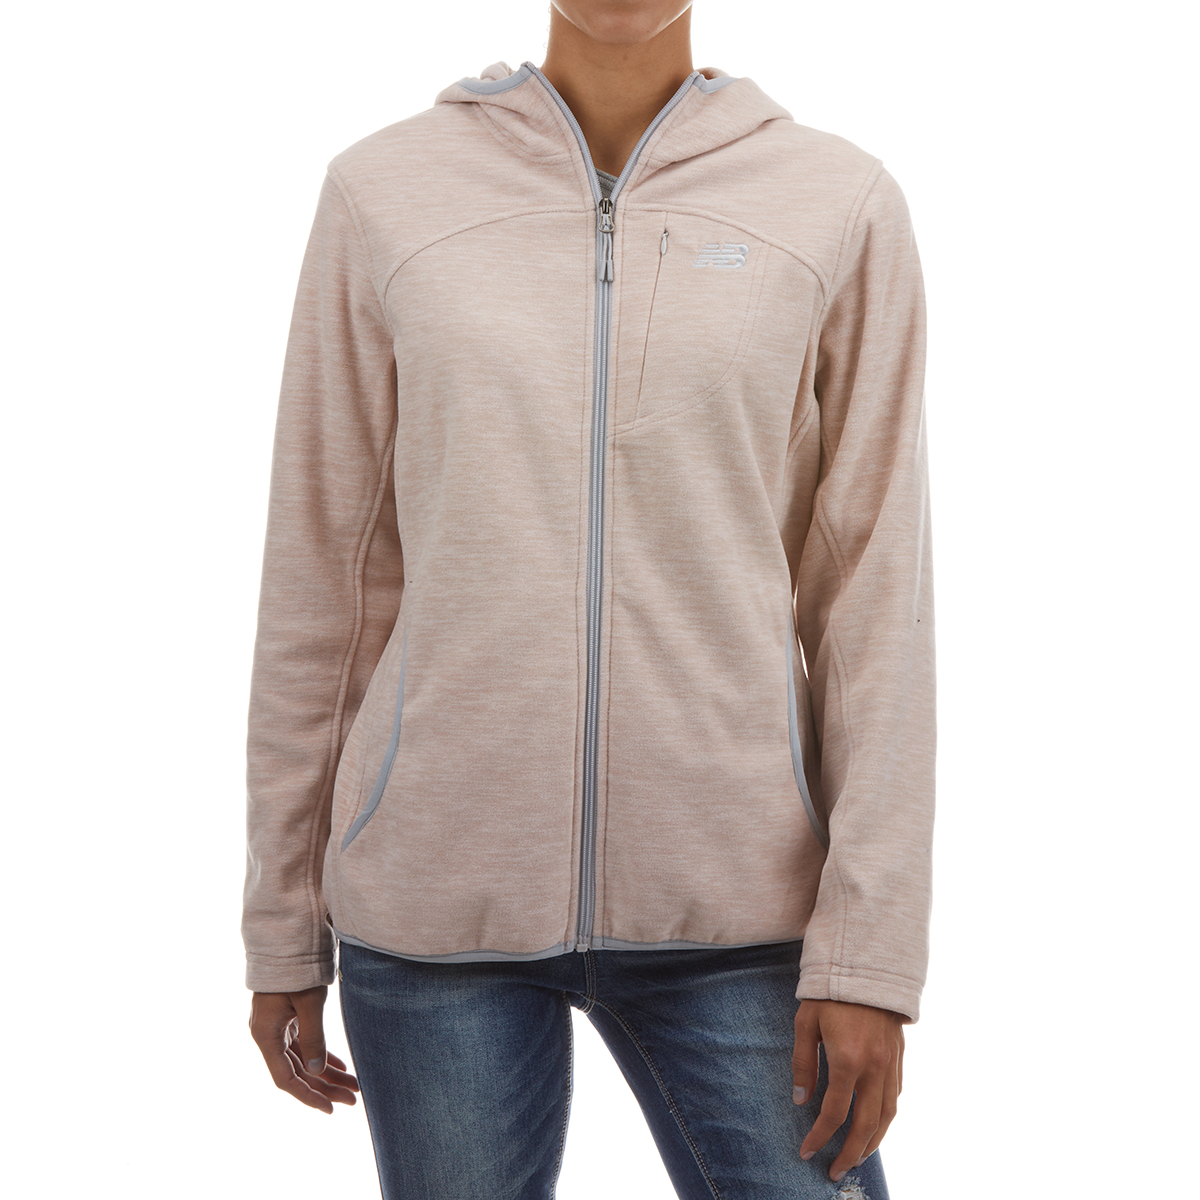 New Balance Women's Full Zip Polar Fleece Spacedye Hoodie - Red, M